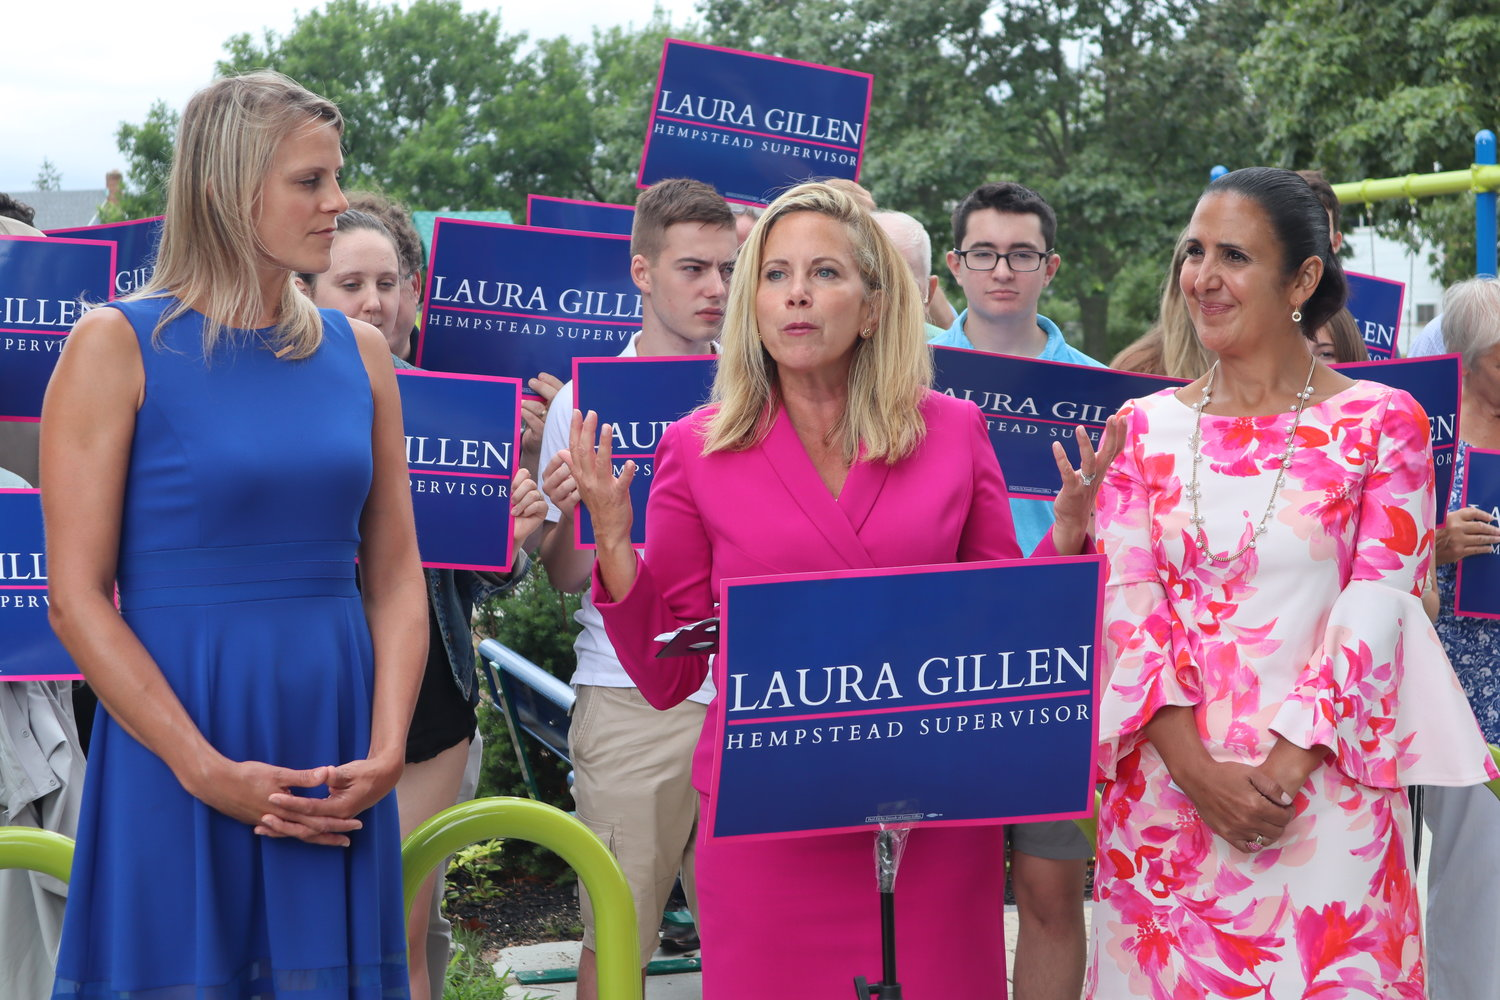 Hempstead Supervisor Laura Gillen, with 5th District candidate Lora Webster, left, and Clerk Sylvia Cabana, held a news conference in Merrick to introduce the slate of Democratic town candidates.